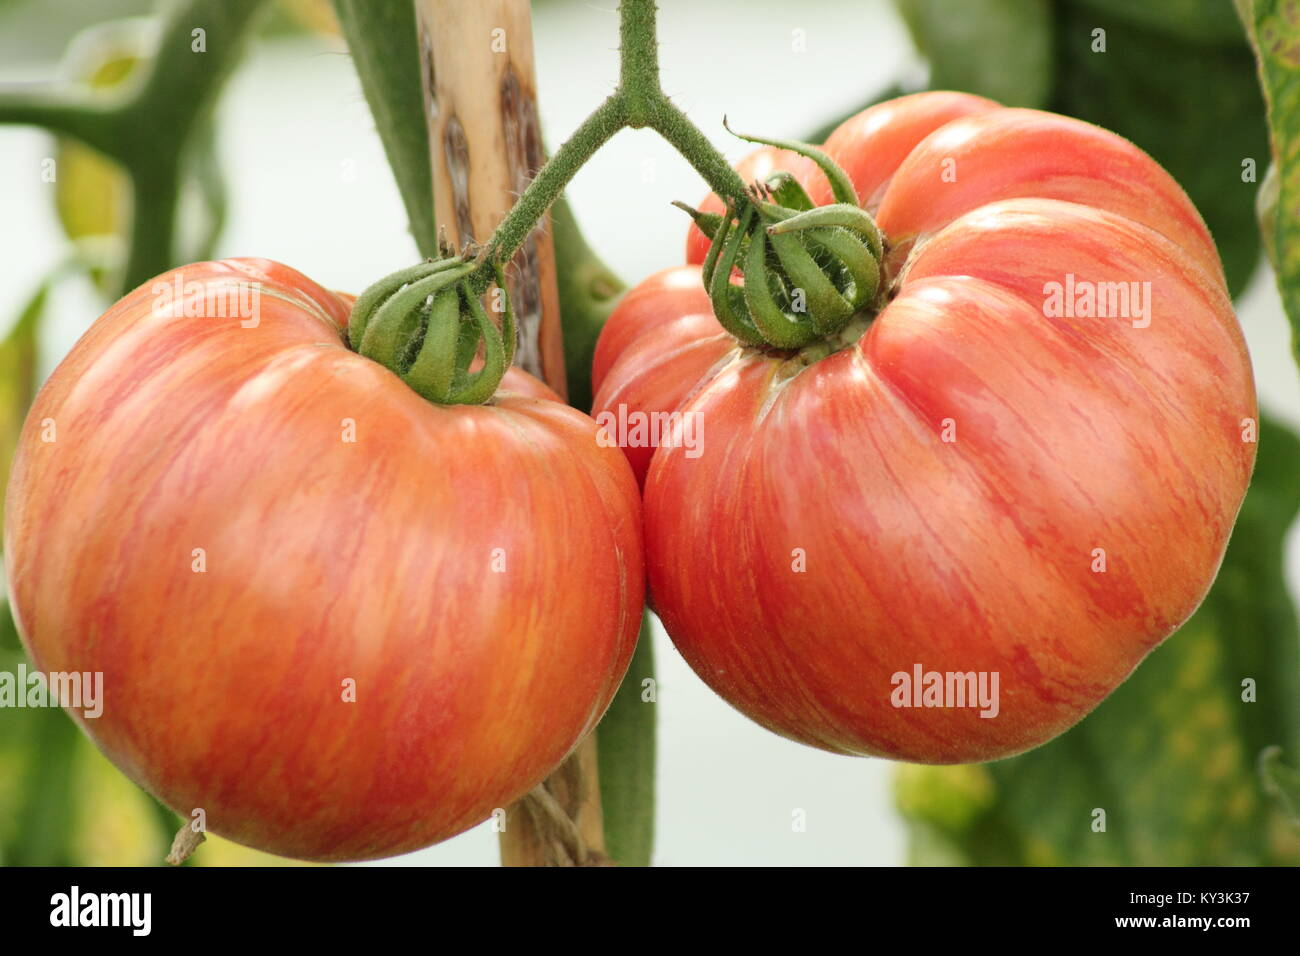 Solanum lycopersicum 'Vintage Wine' tomato plant variety growing on the vine in a greenhouse, England, UK - Stock Image